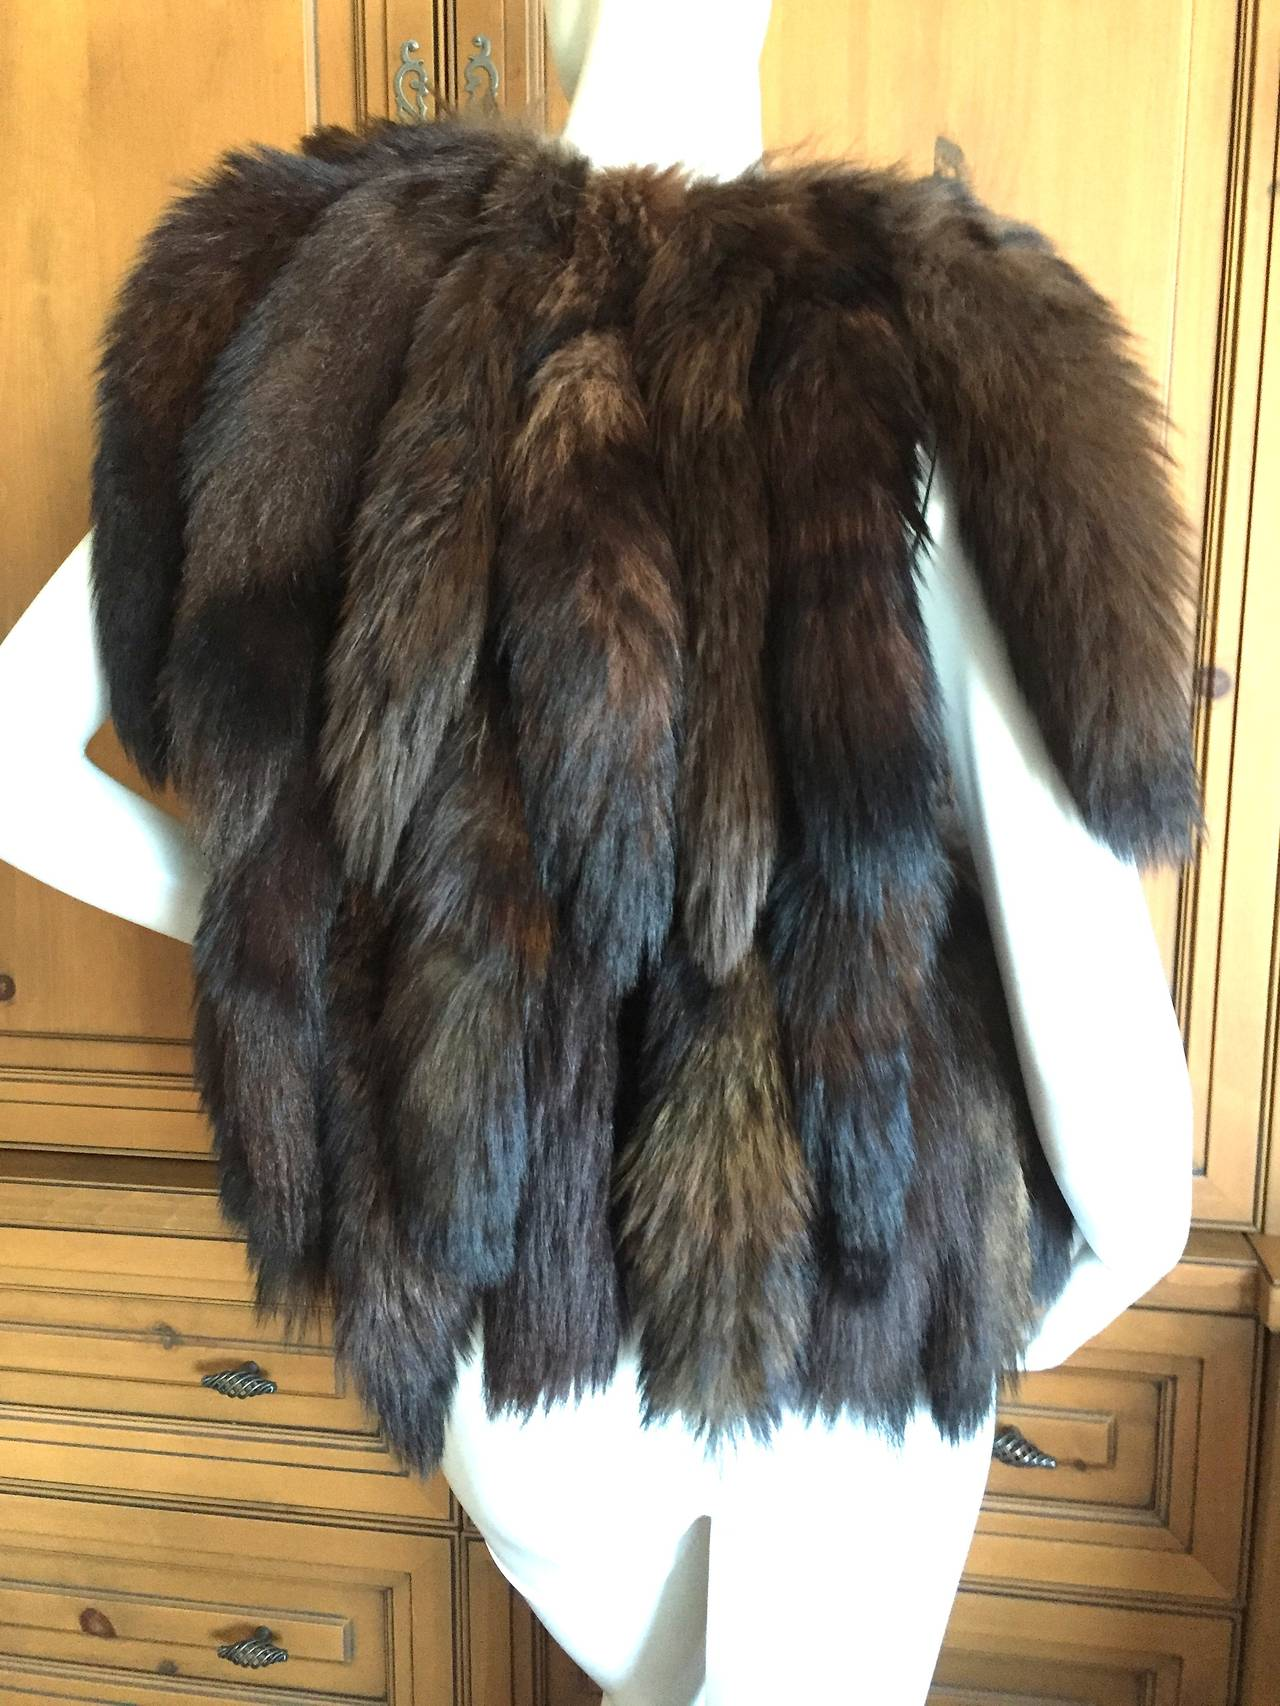 Giorgio Bevery HIlls Boho Fox Tail Boho Vest In Good Condition For Sale In San Francisco, CA